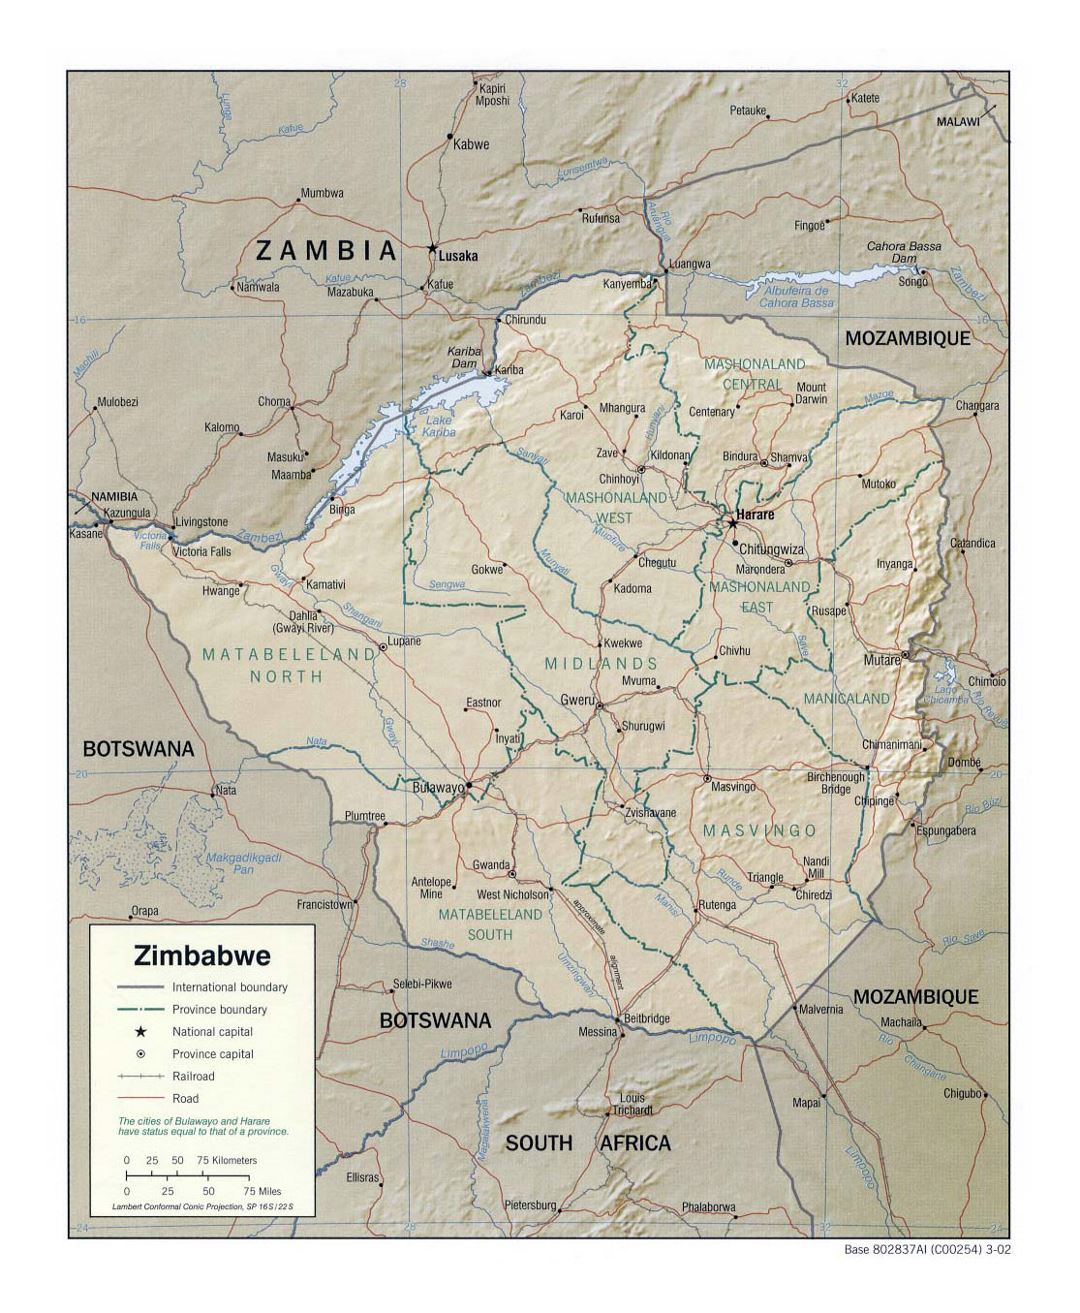 Detailed political and administrative map of Zimbabwe with relief, roads, railroads and major cities - 2002